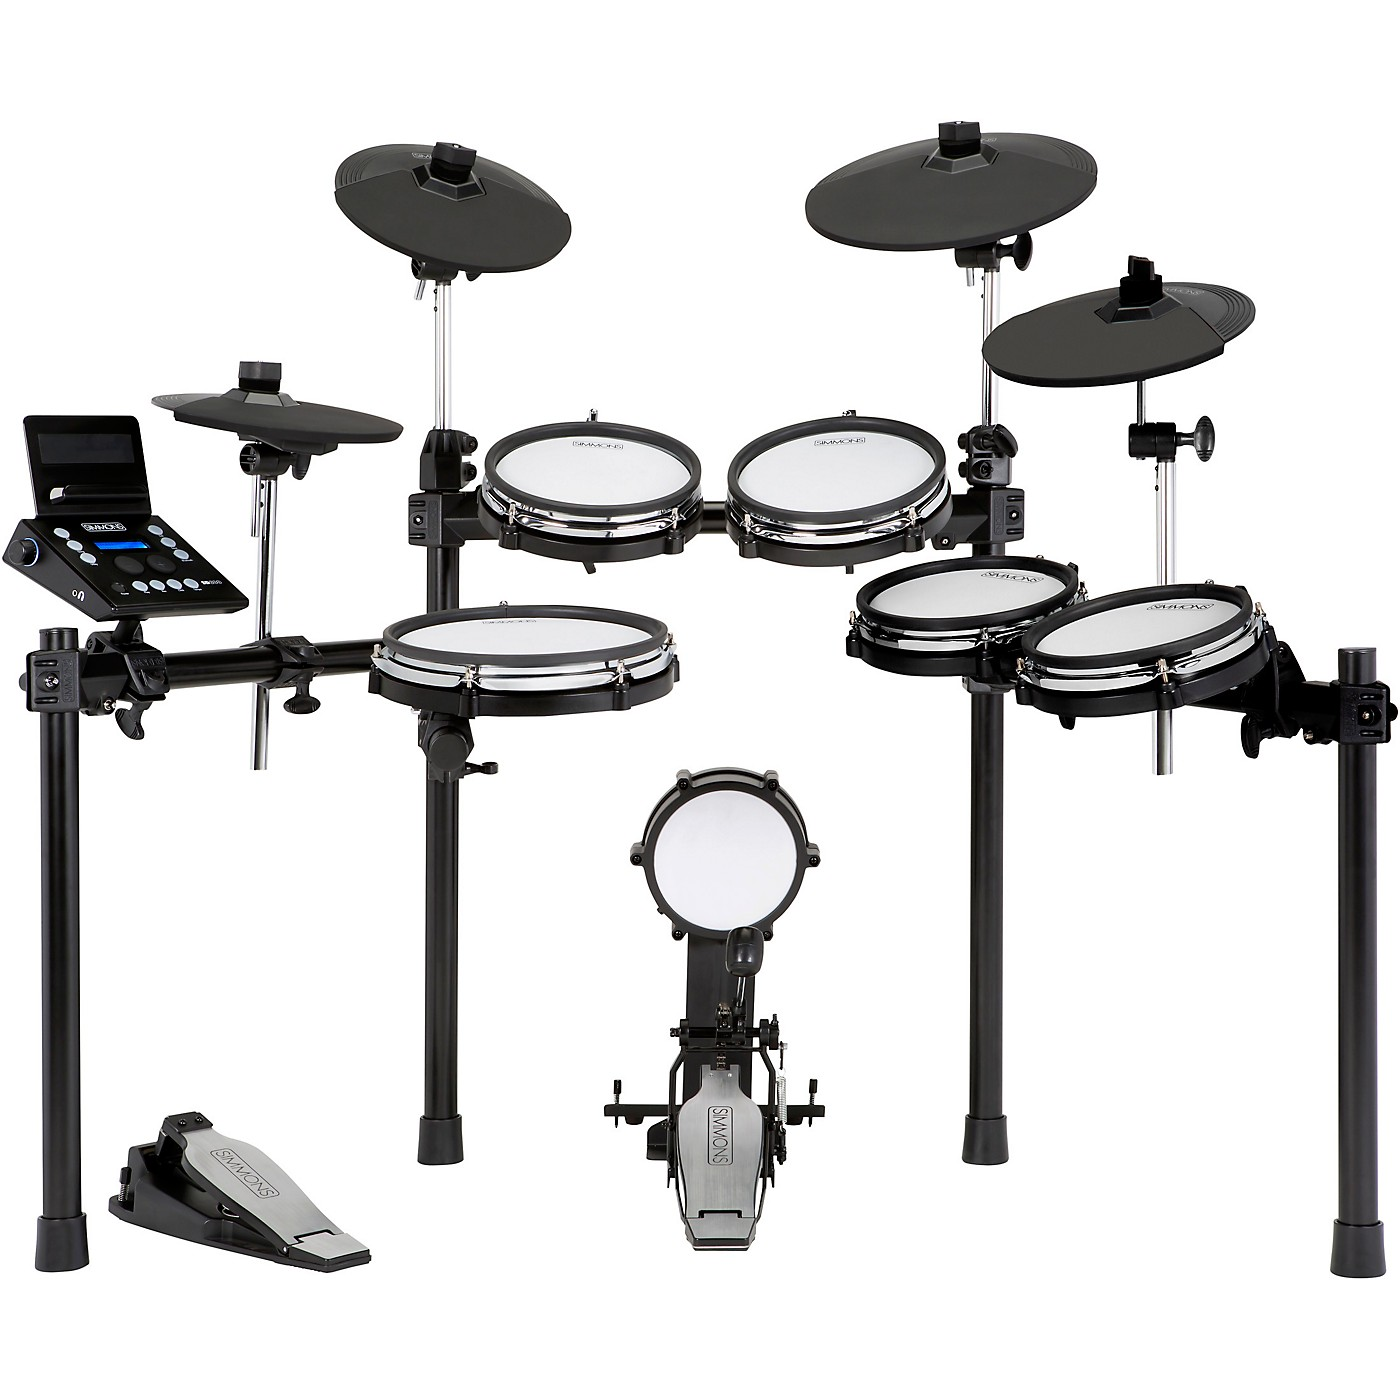 Simmons SD600 Expanded Electronic Drum Kit with Mesh Pads and Bluetooth thumbnail